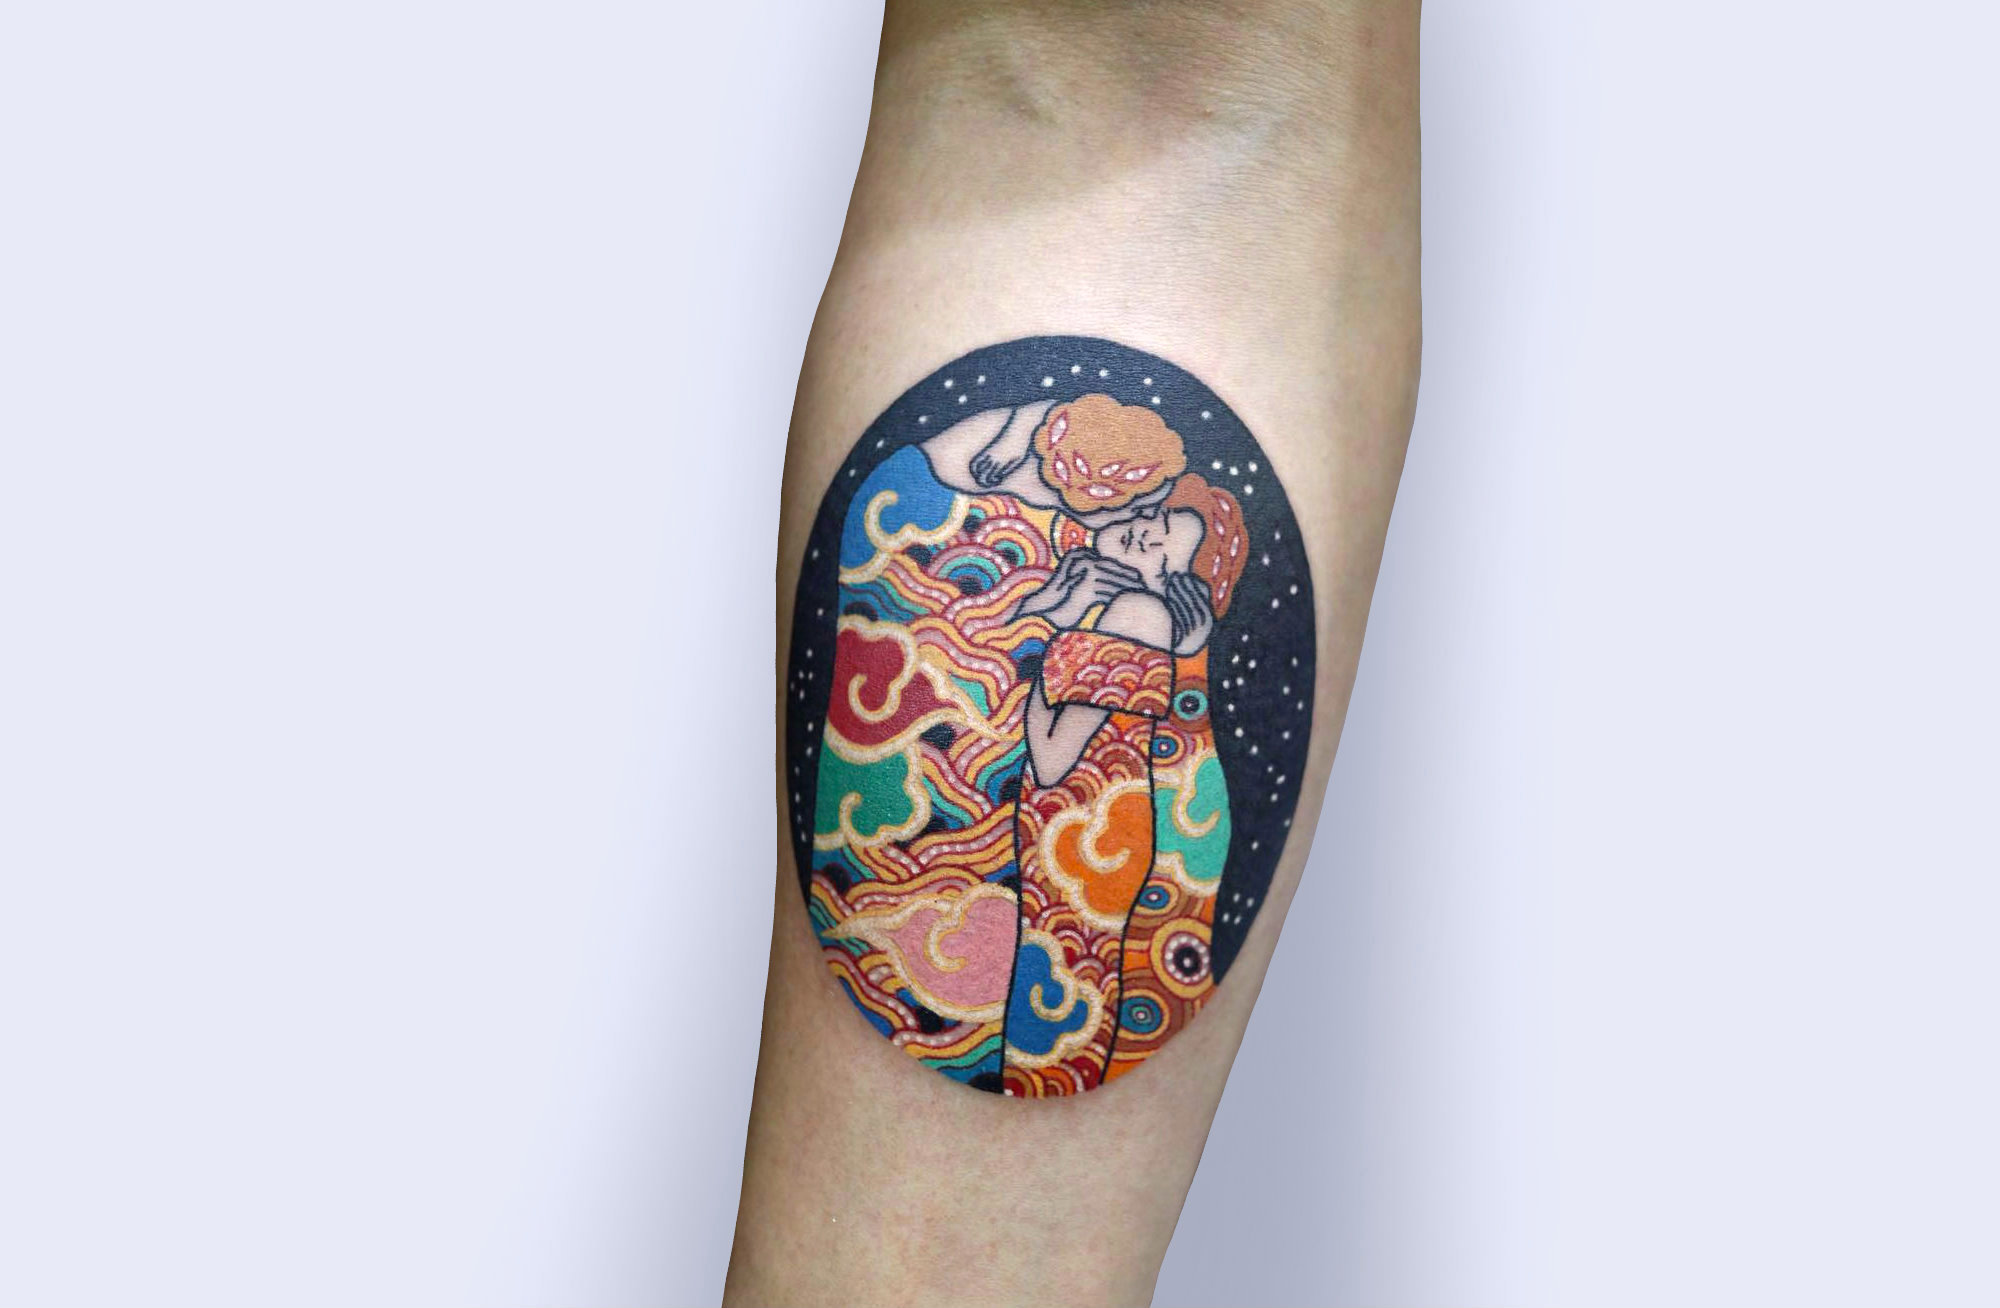 A Korean Twist on Iconic Fine Art: Pitta KKM Tattoos